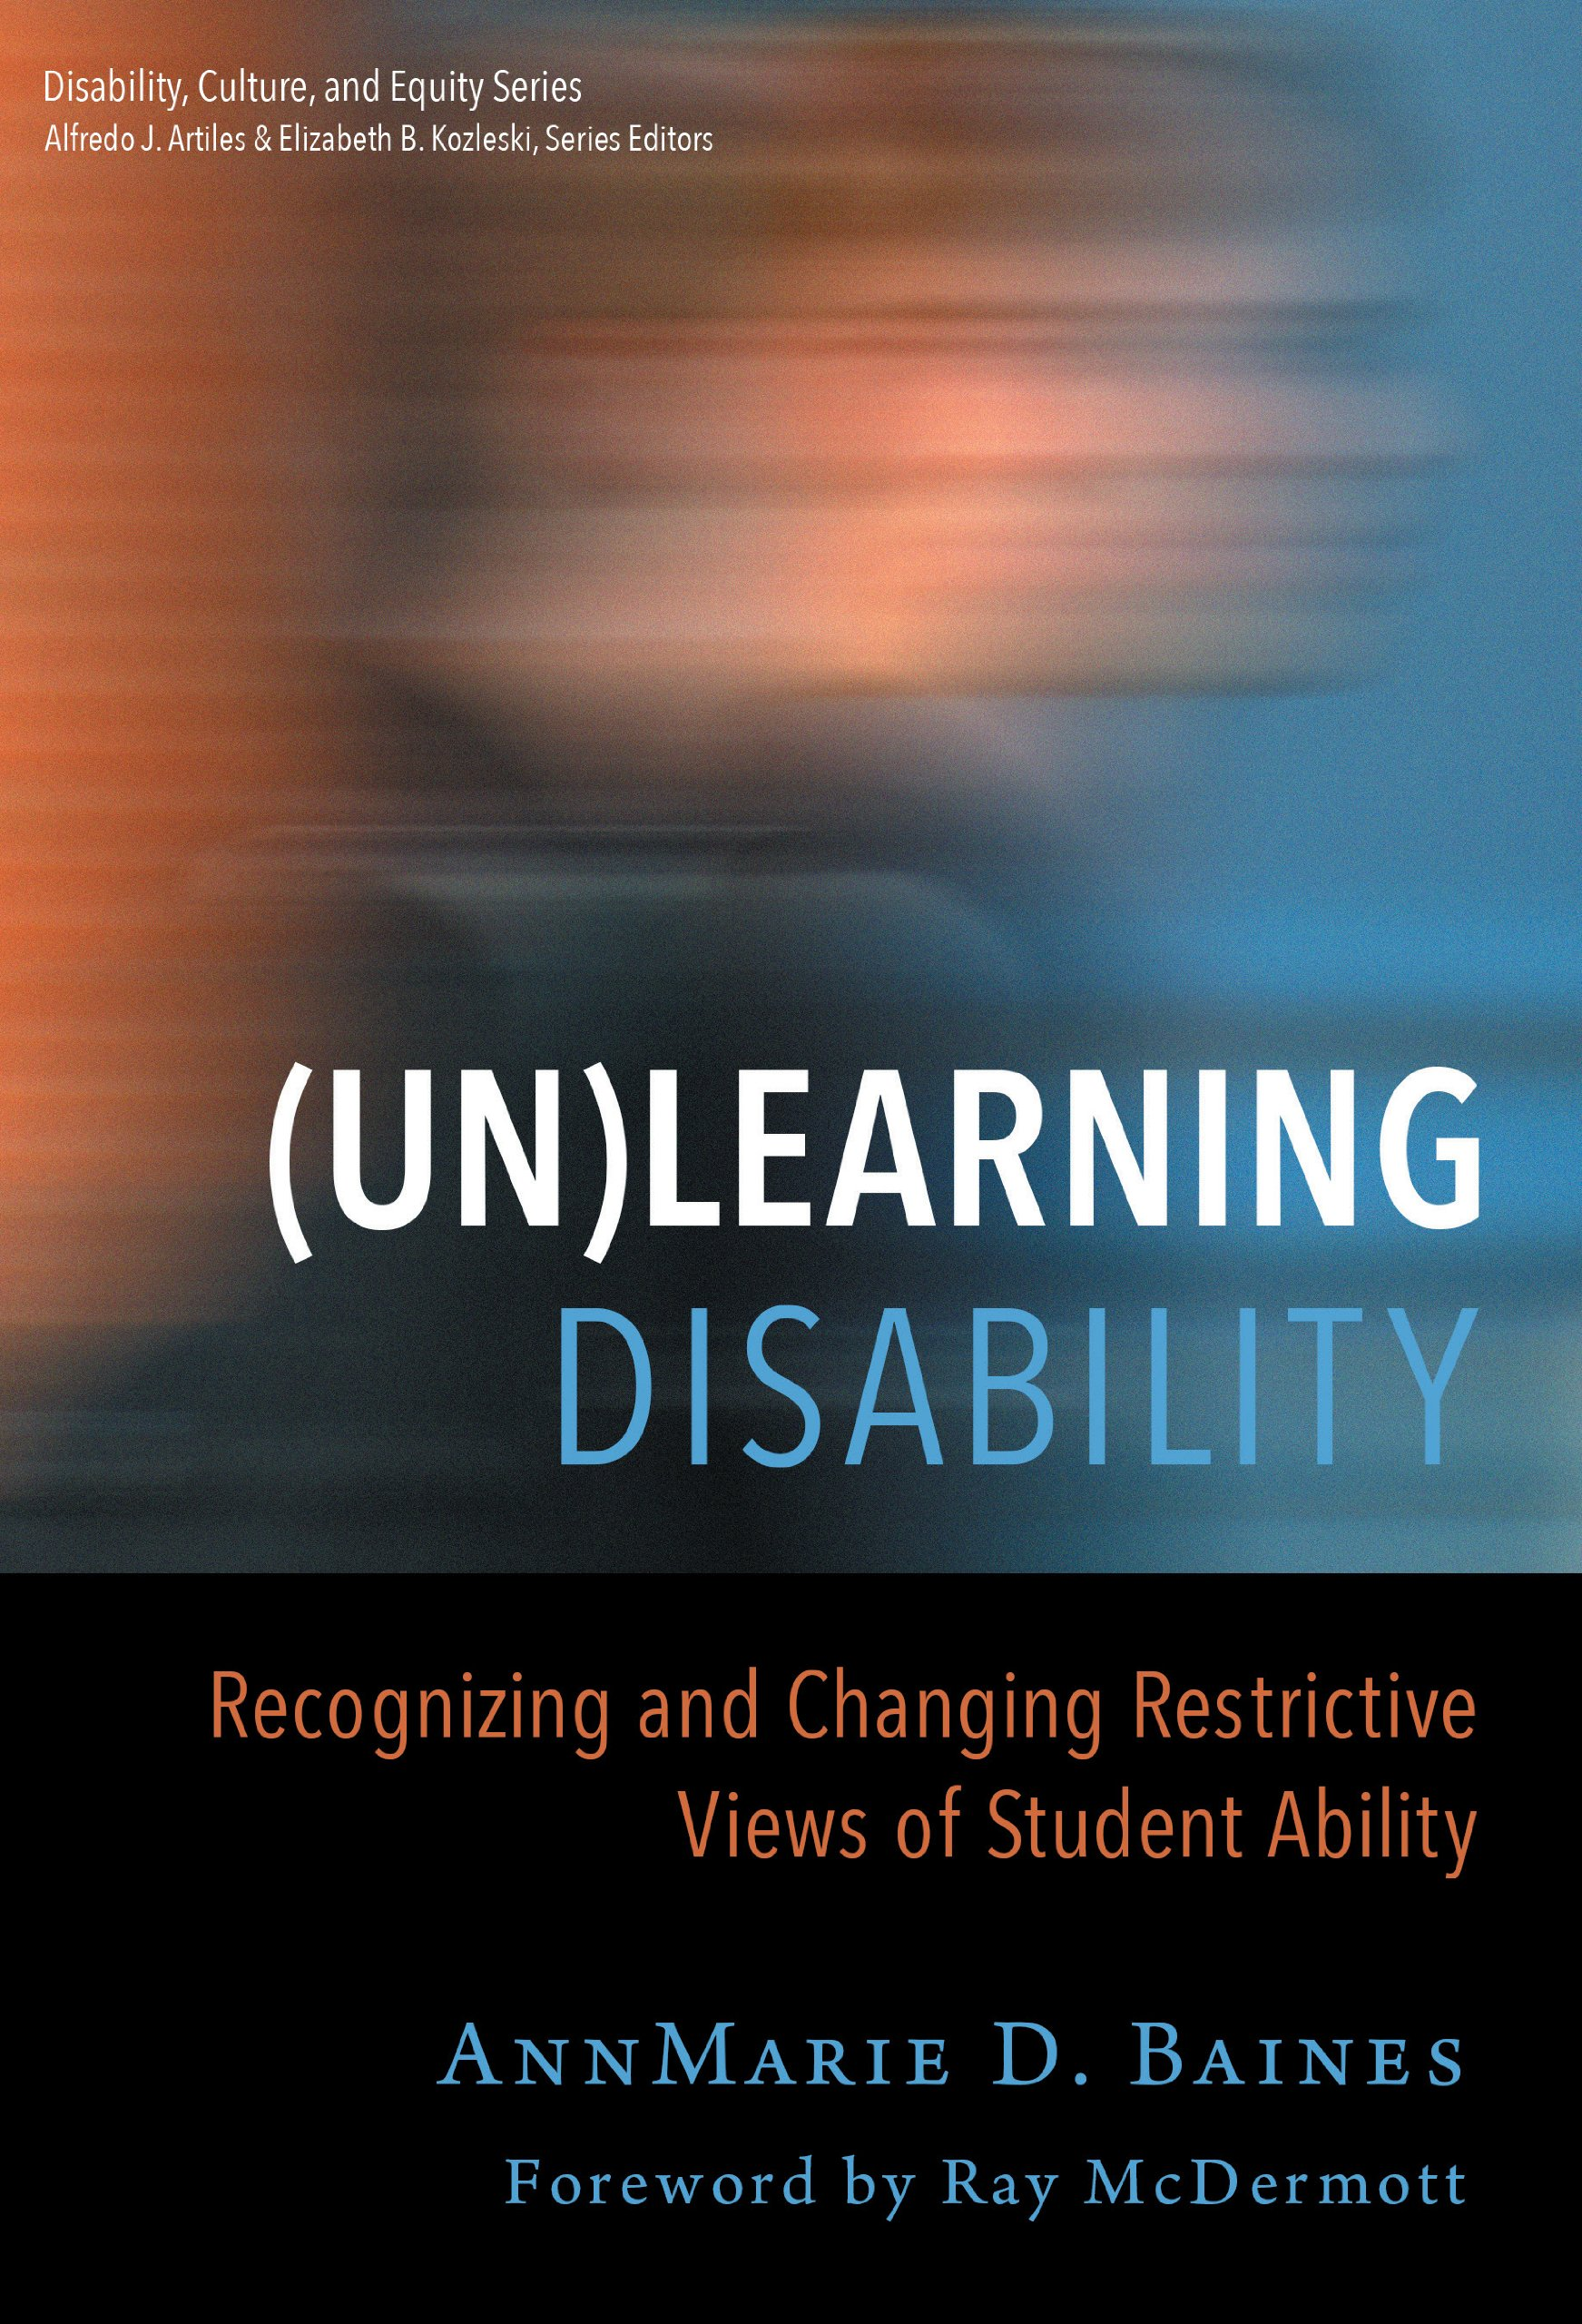 Read Online (Un)Learning Disability: Recognizing and Changing Restrictive Views of Student Ability (Disability, Culture, and Equity Series) pdf epub